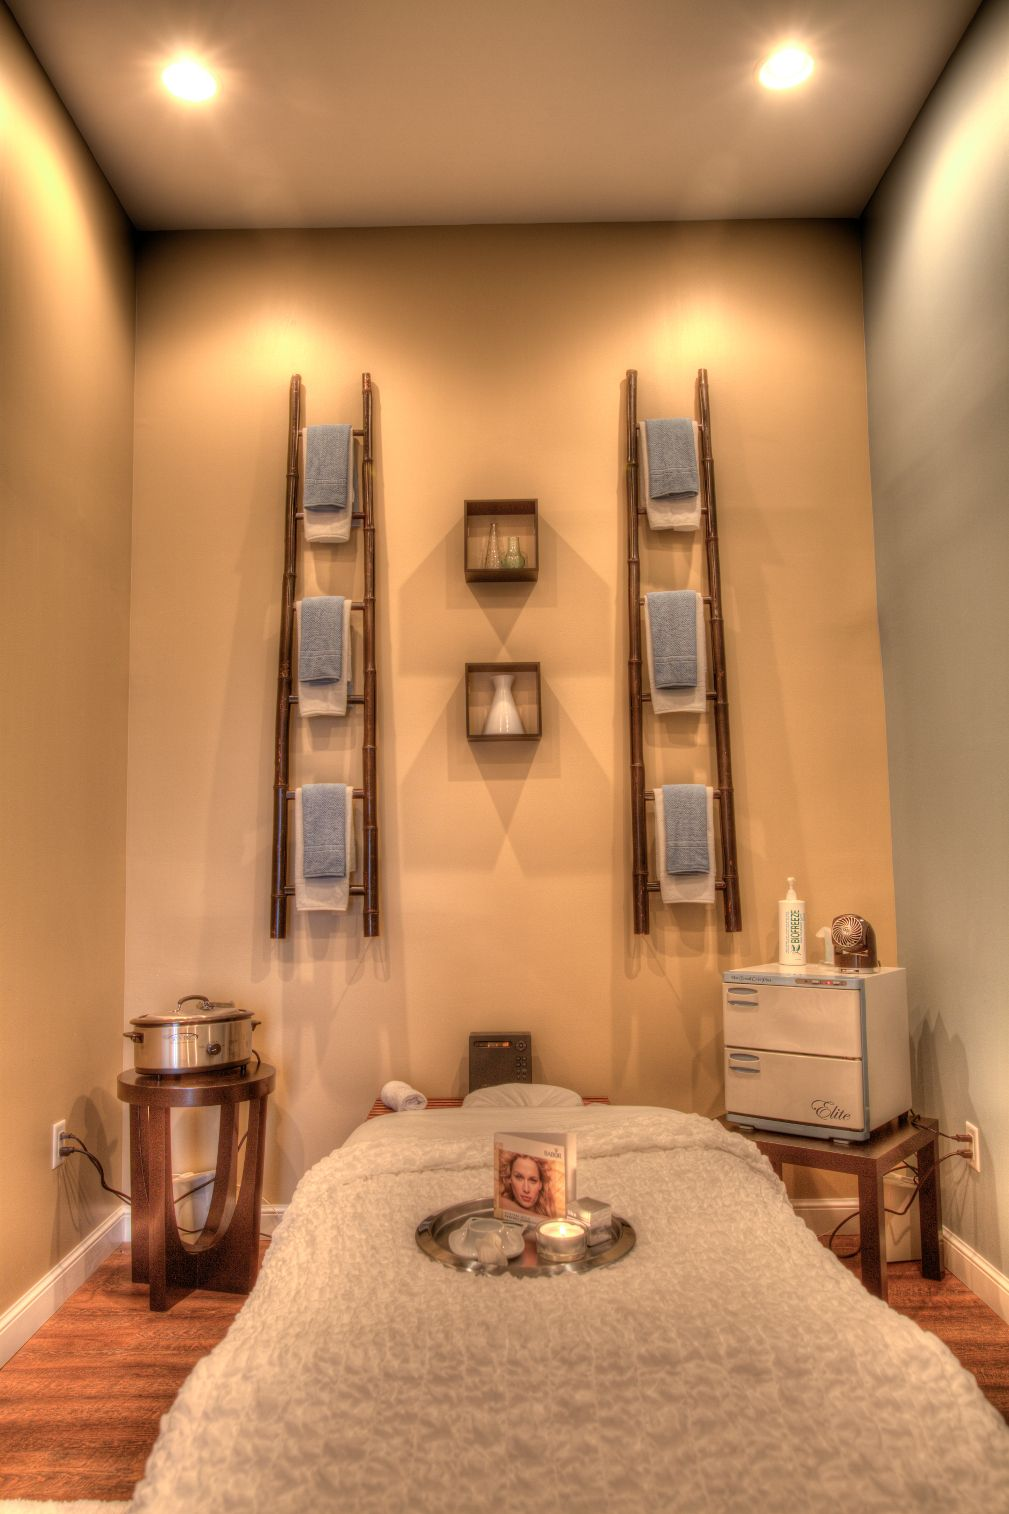 Our relaxing massage room located at Key to life Therapies Med Spa ...